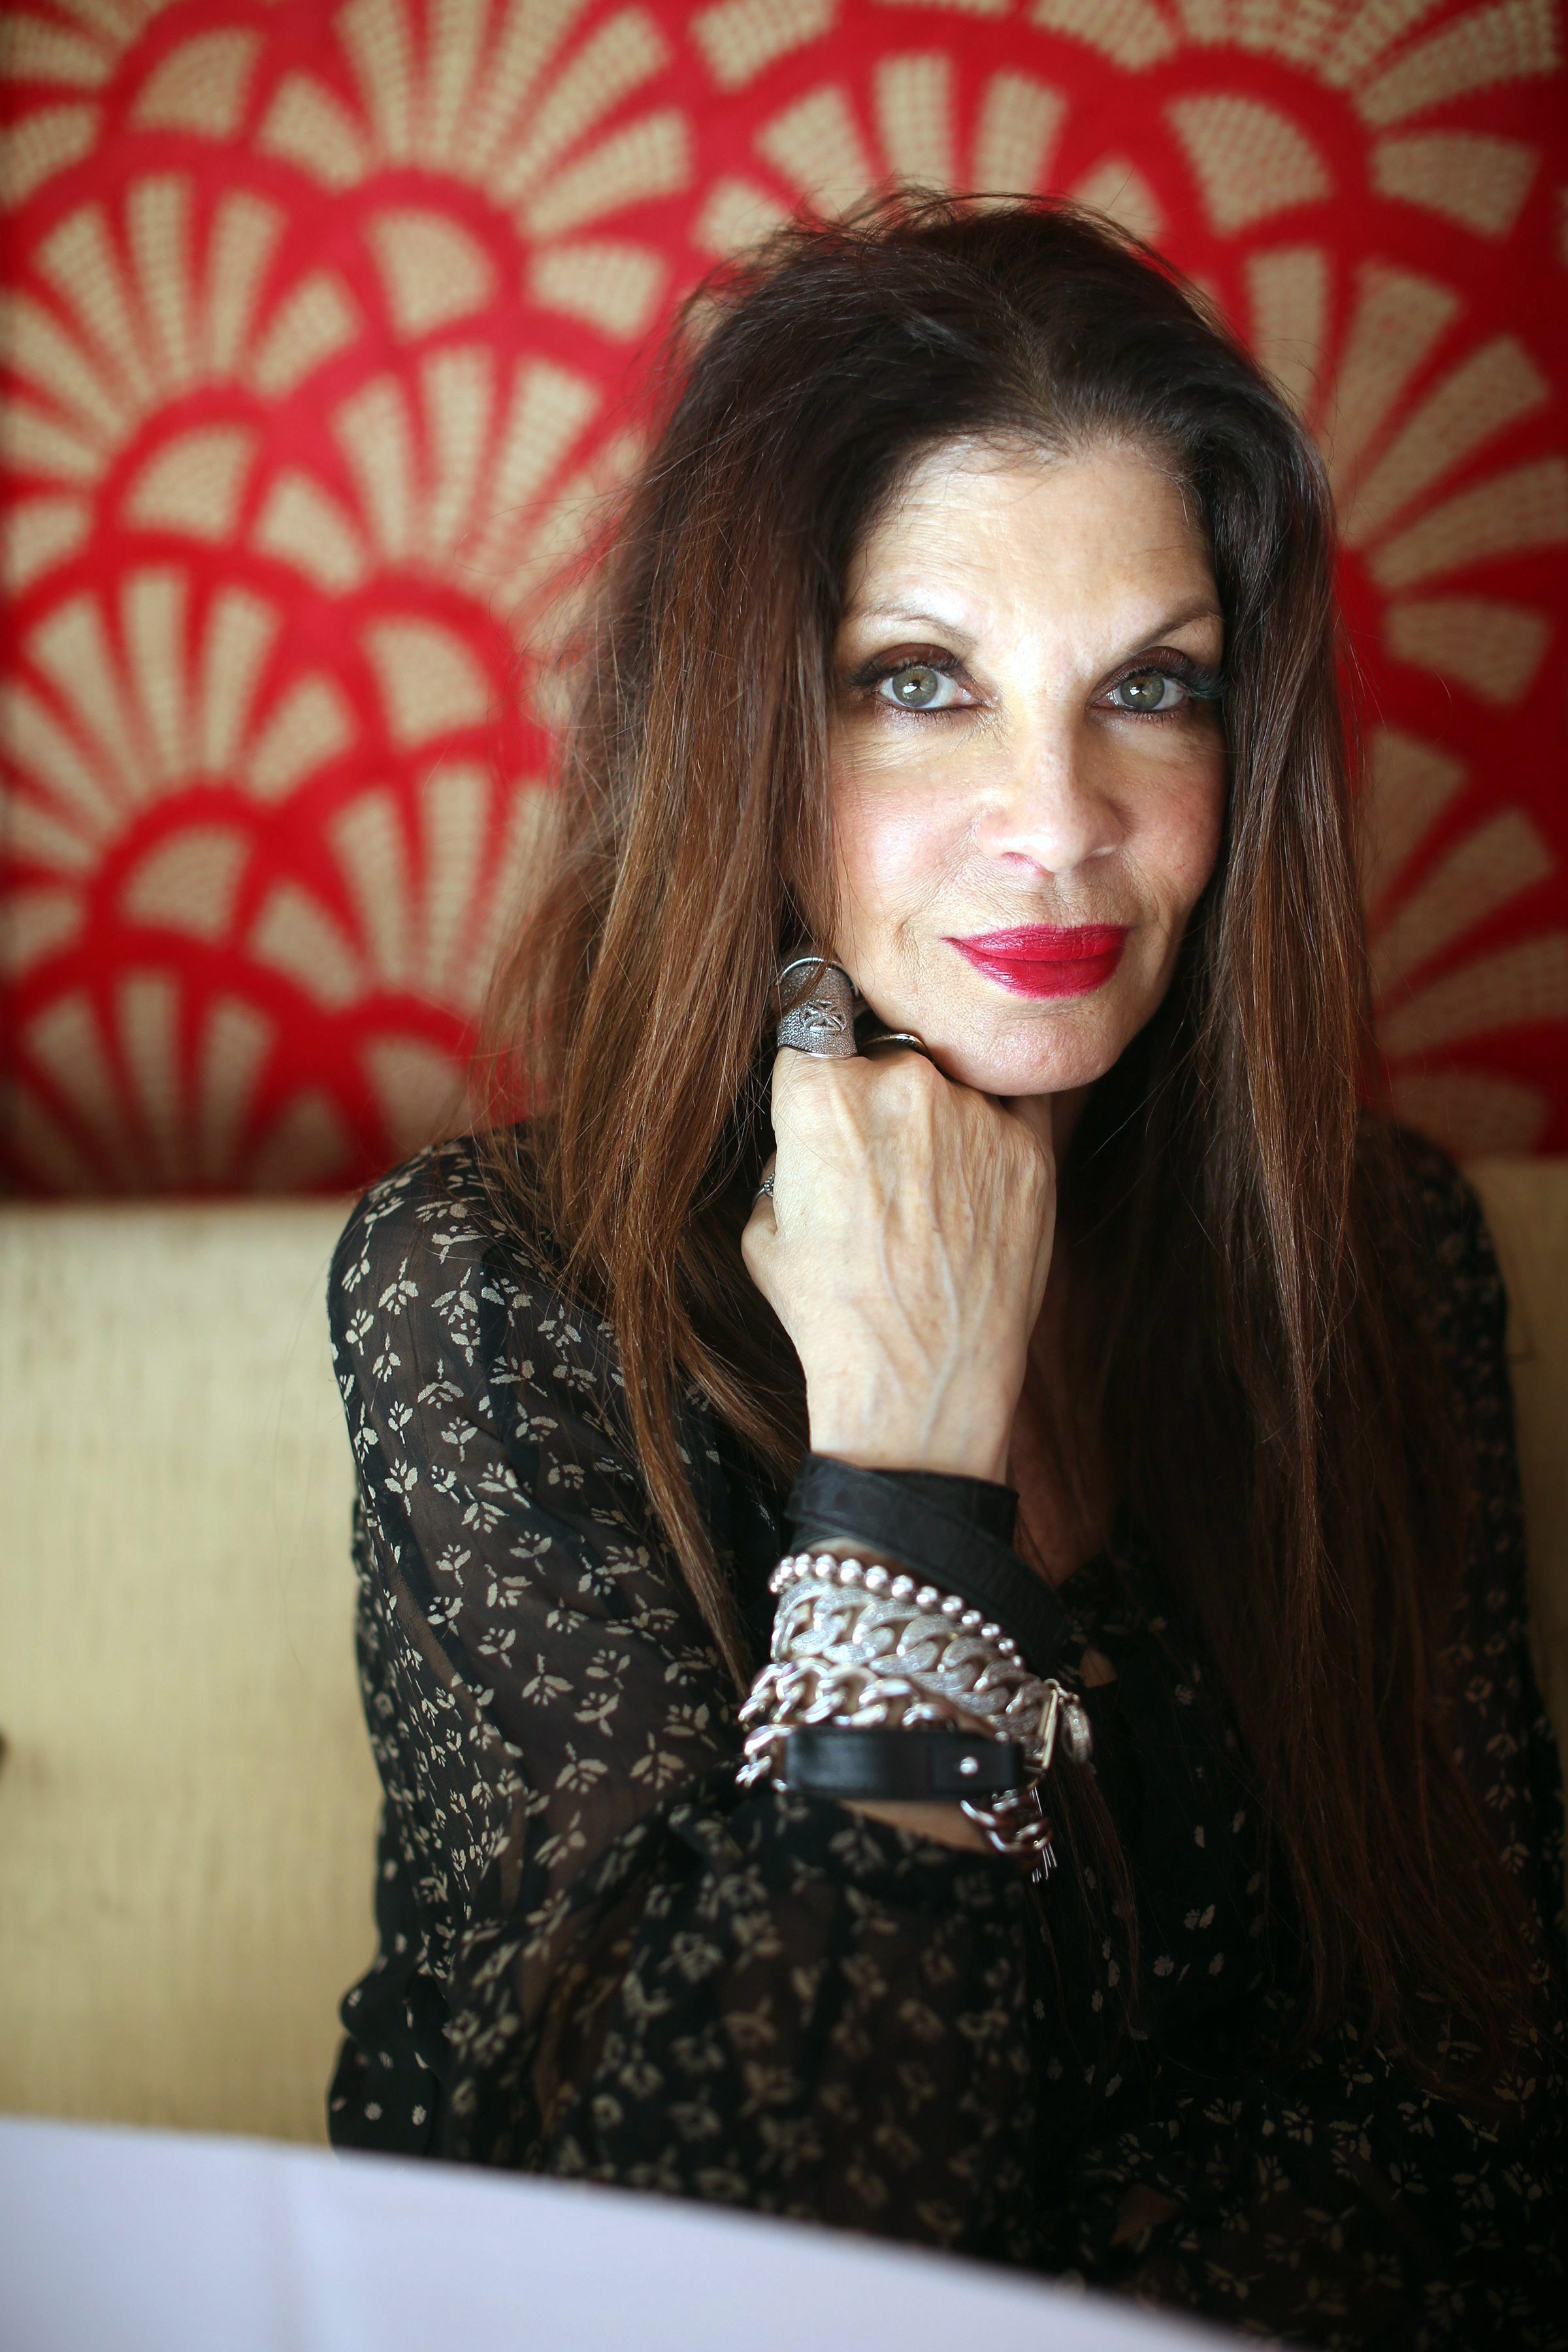 Jewelry designer Loree Rodkin also has worked as a party planner, Hollywood talent manager and decorator for rockers and pop stars.